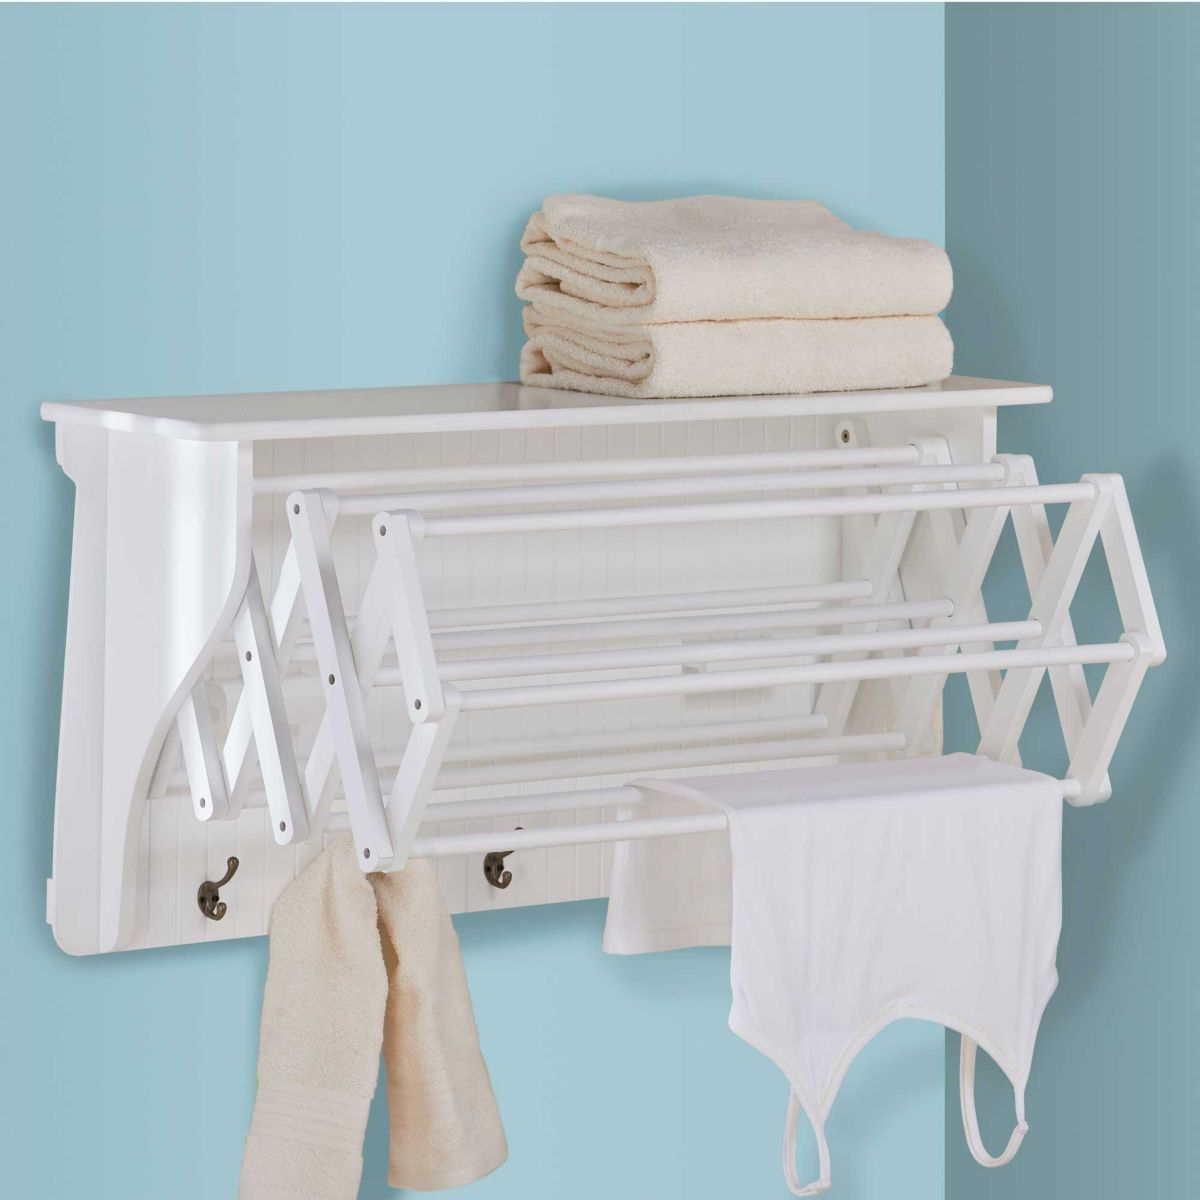 Accordion drying rack laundry rooms laundry and room